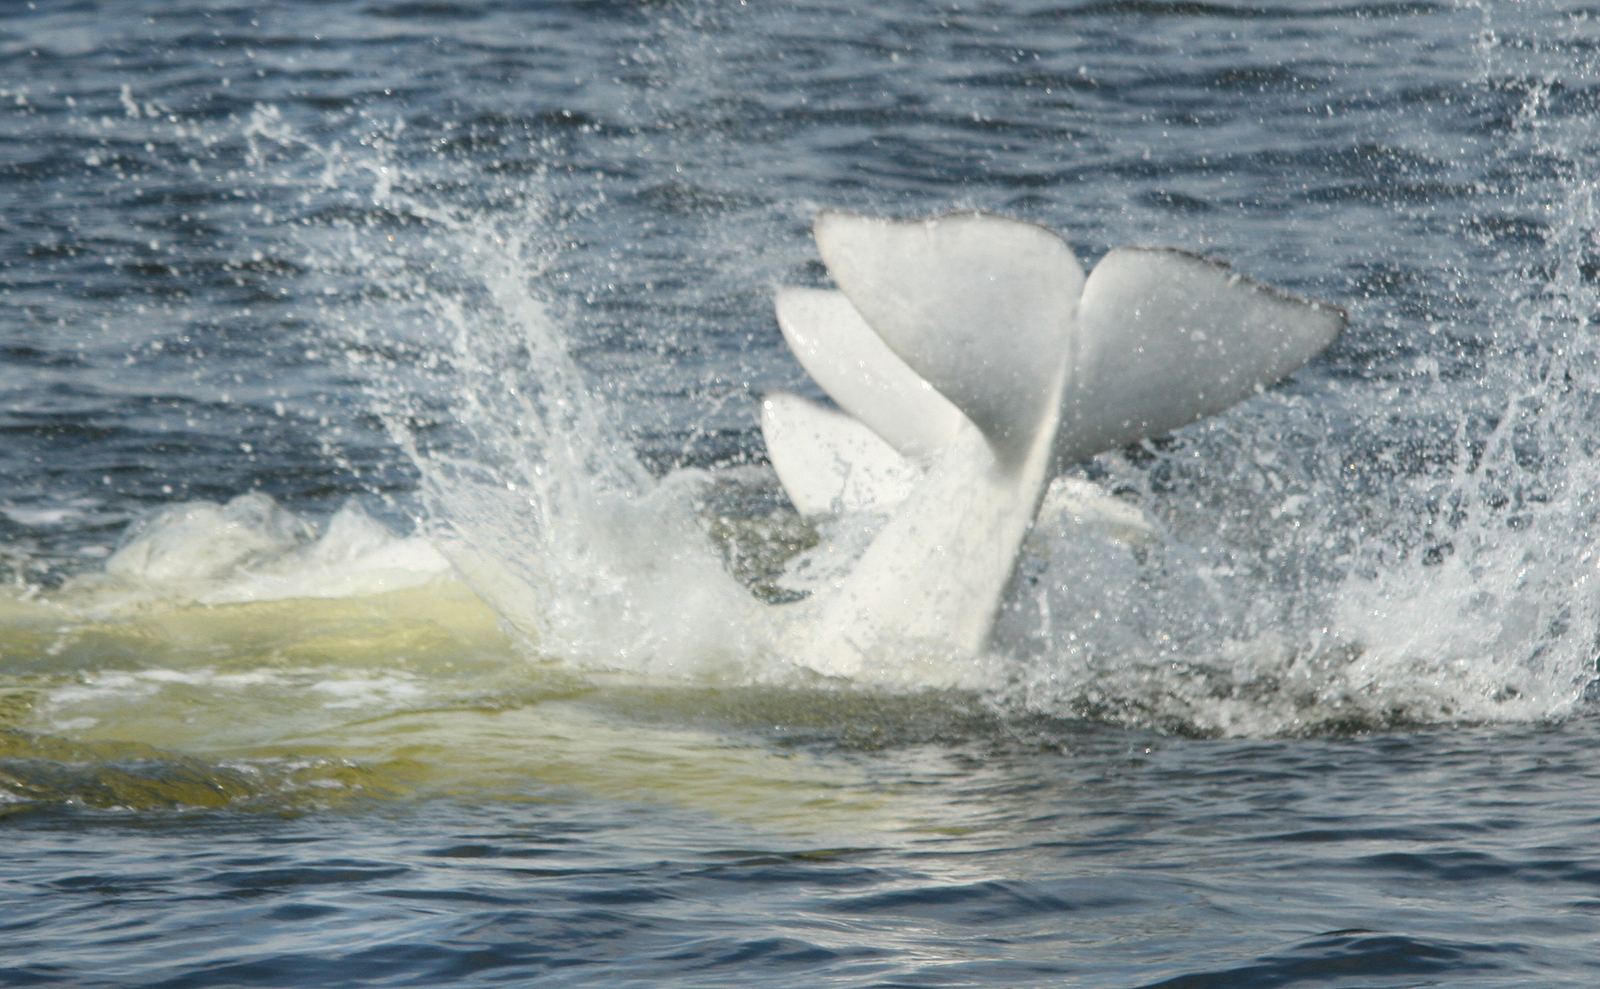 Beluga whales on the surface in the St. Lawrence River